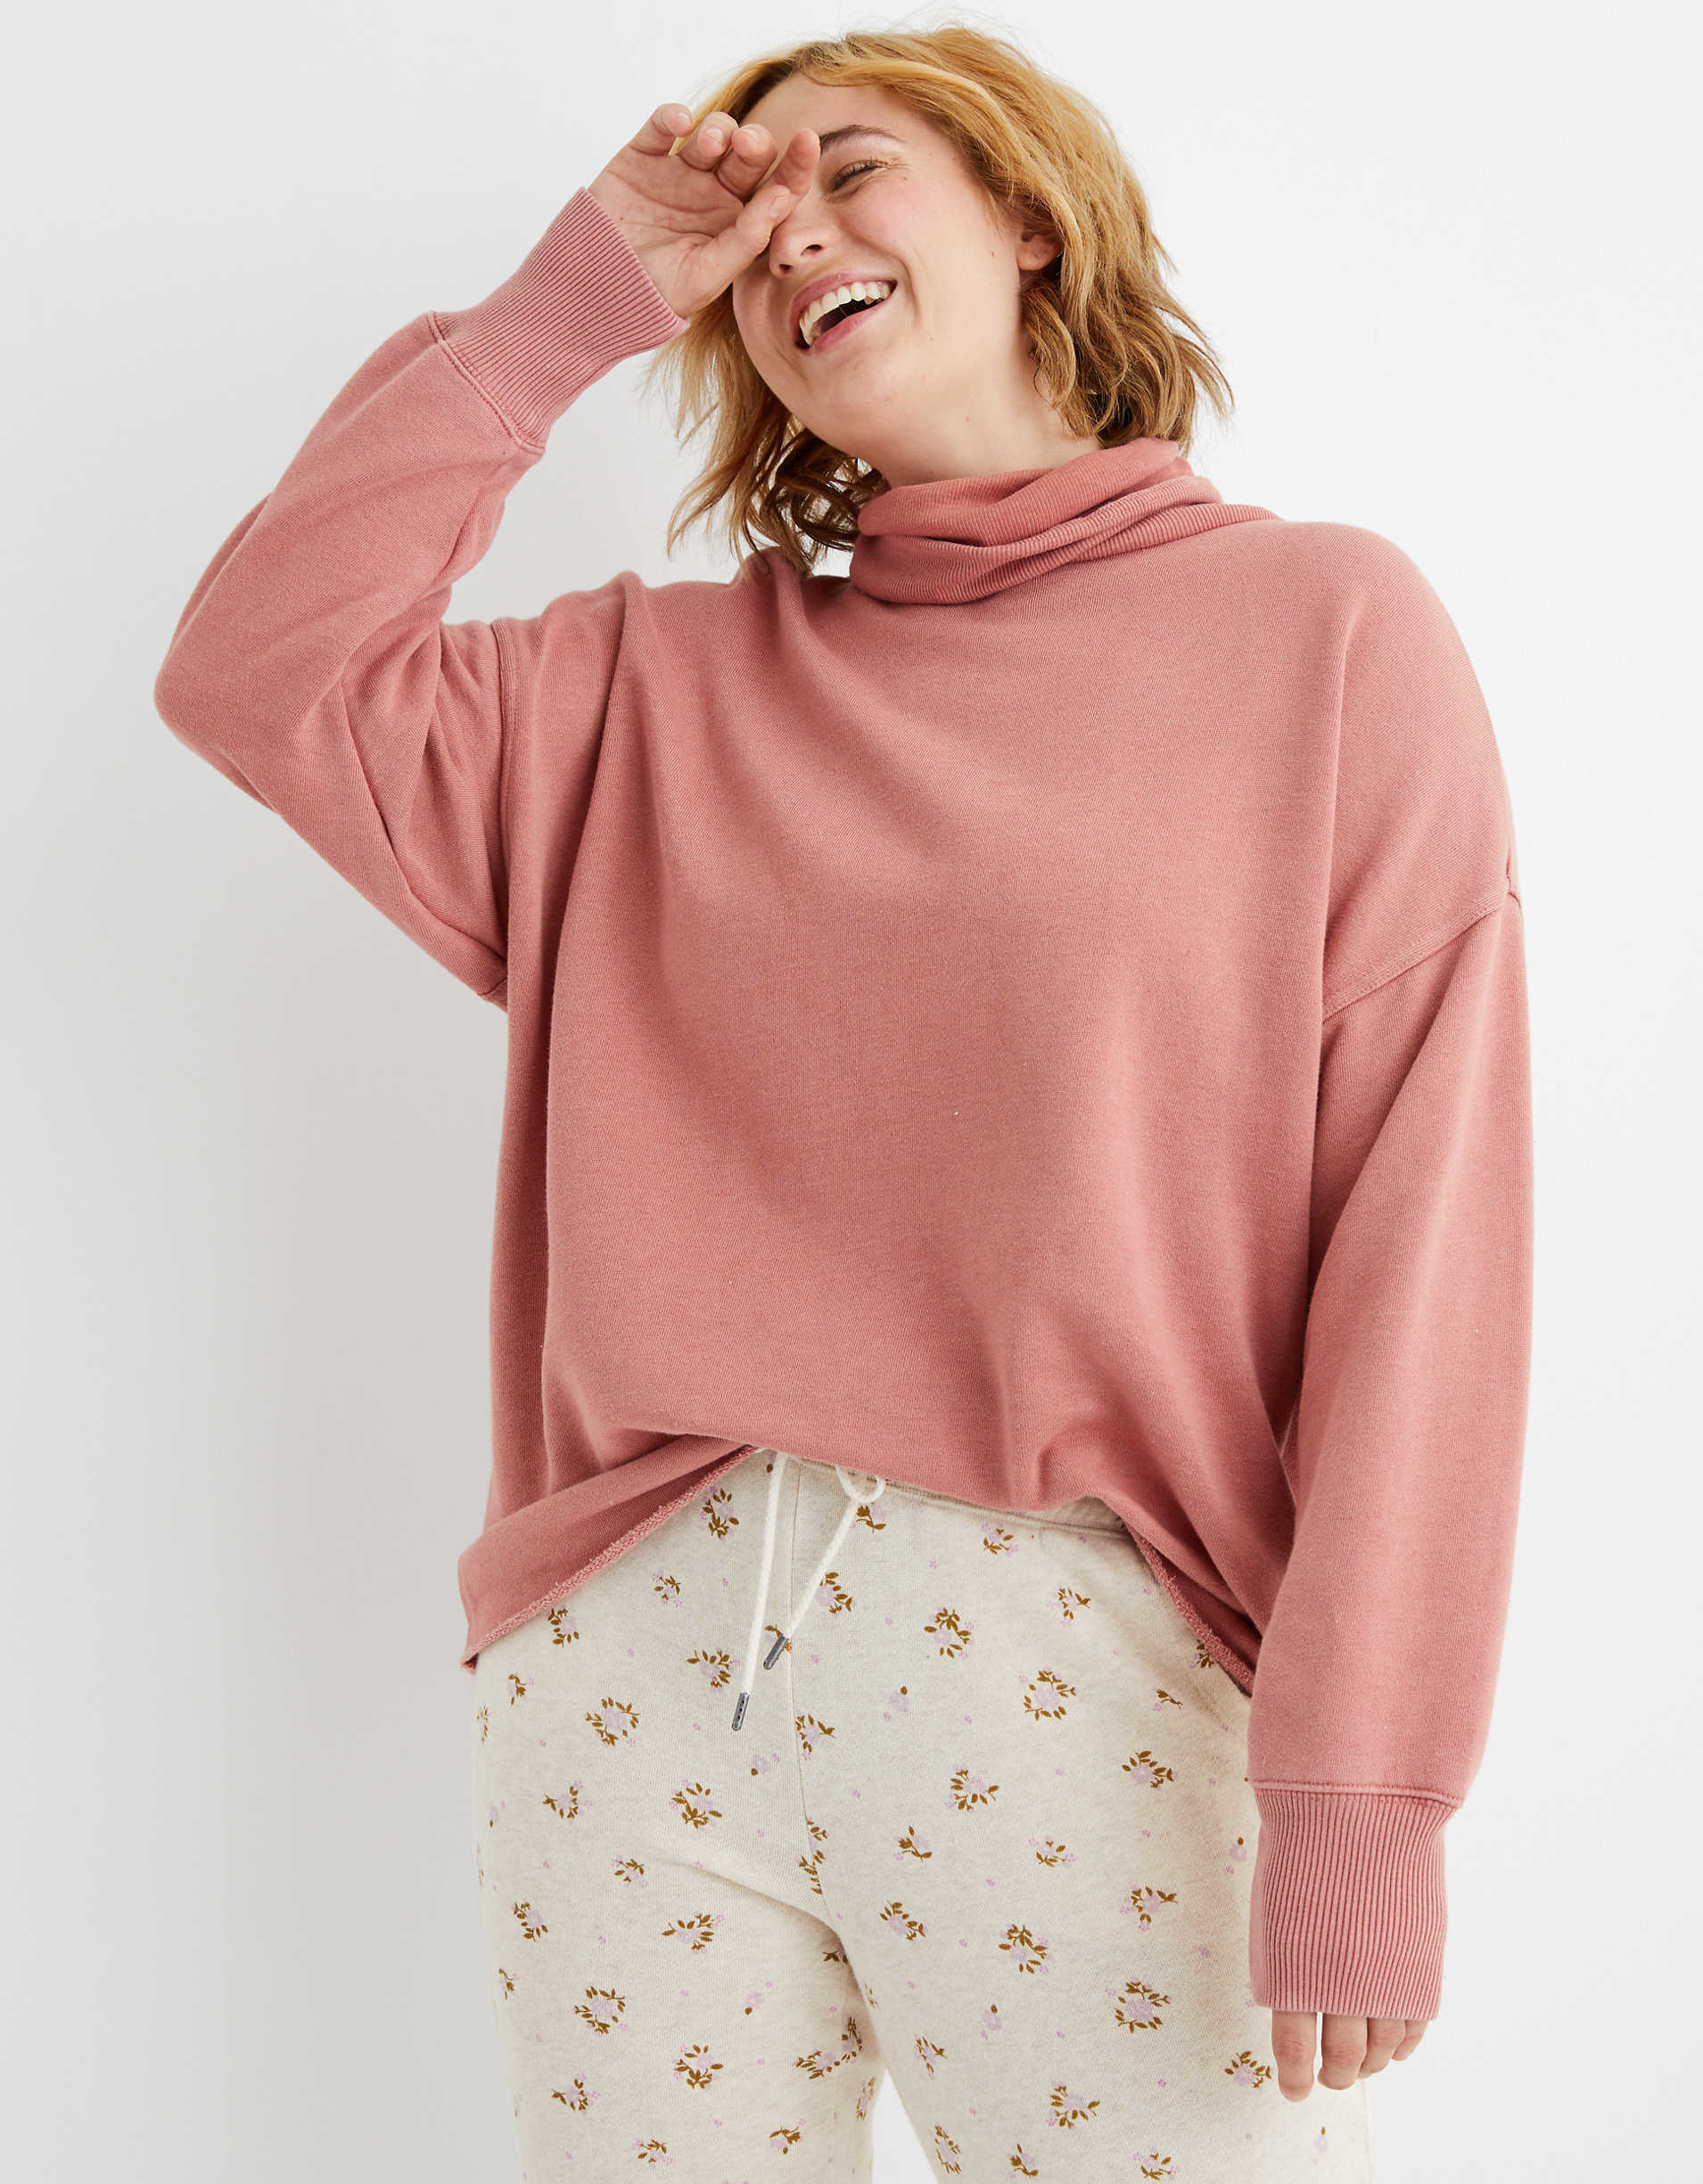 Model wearing the fleece sweatshirt with a slouchy turtleneck and dropped shoulder